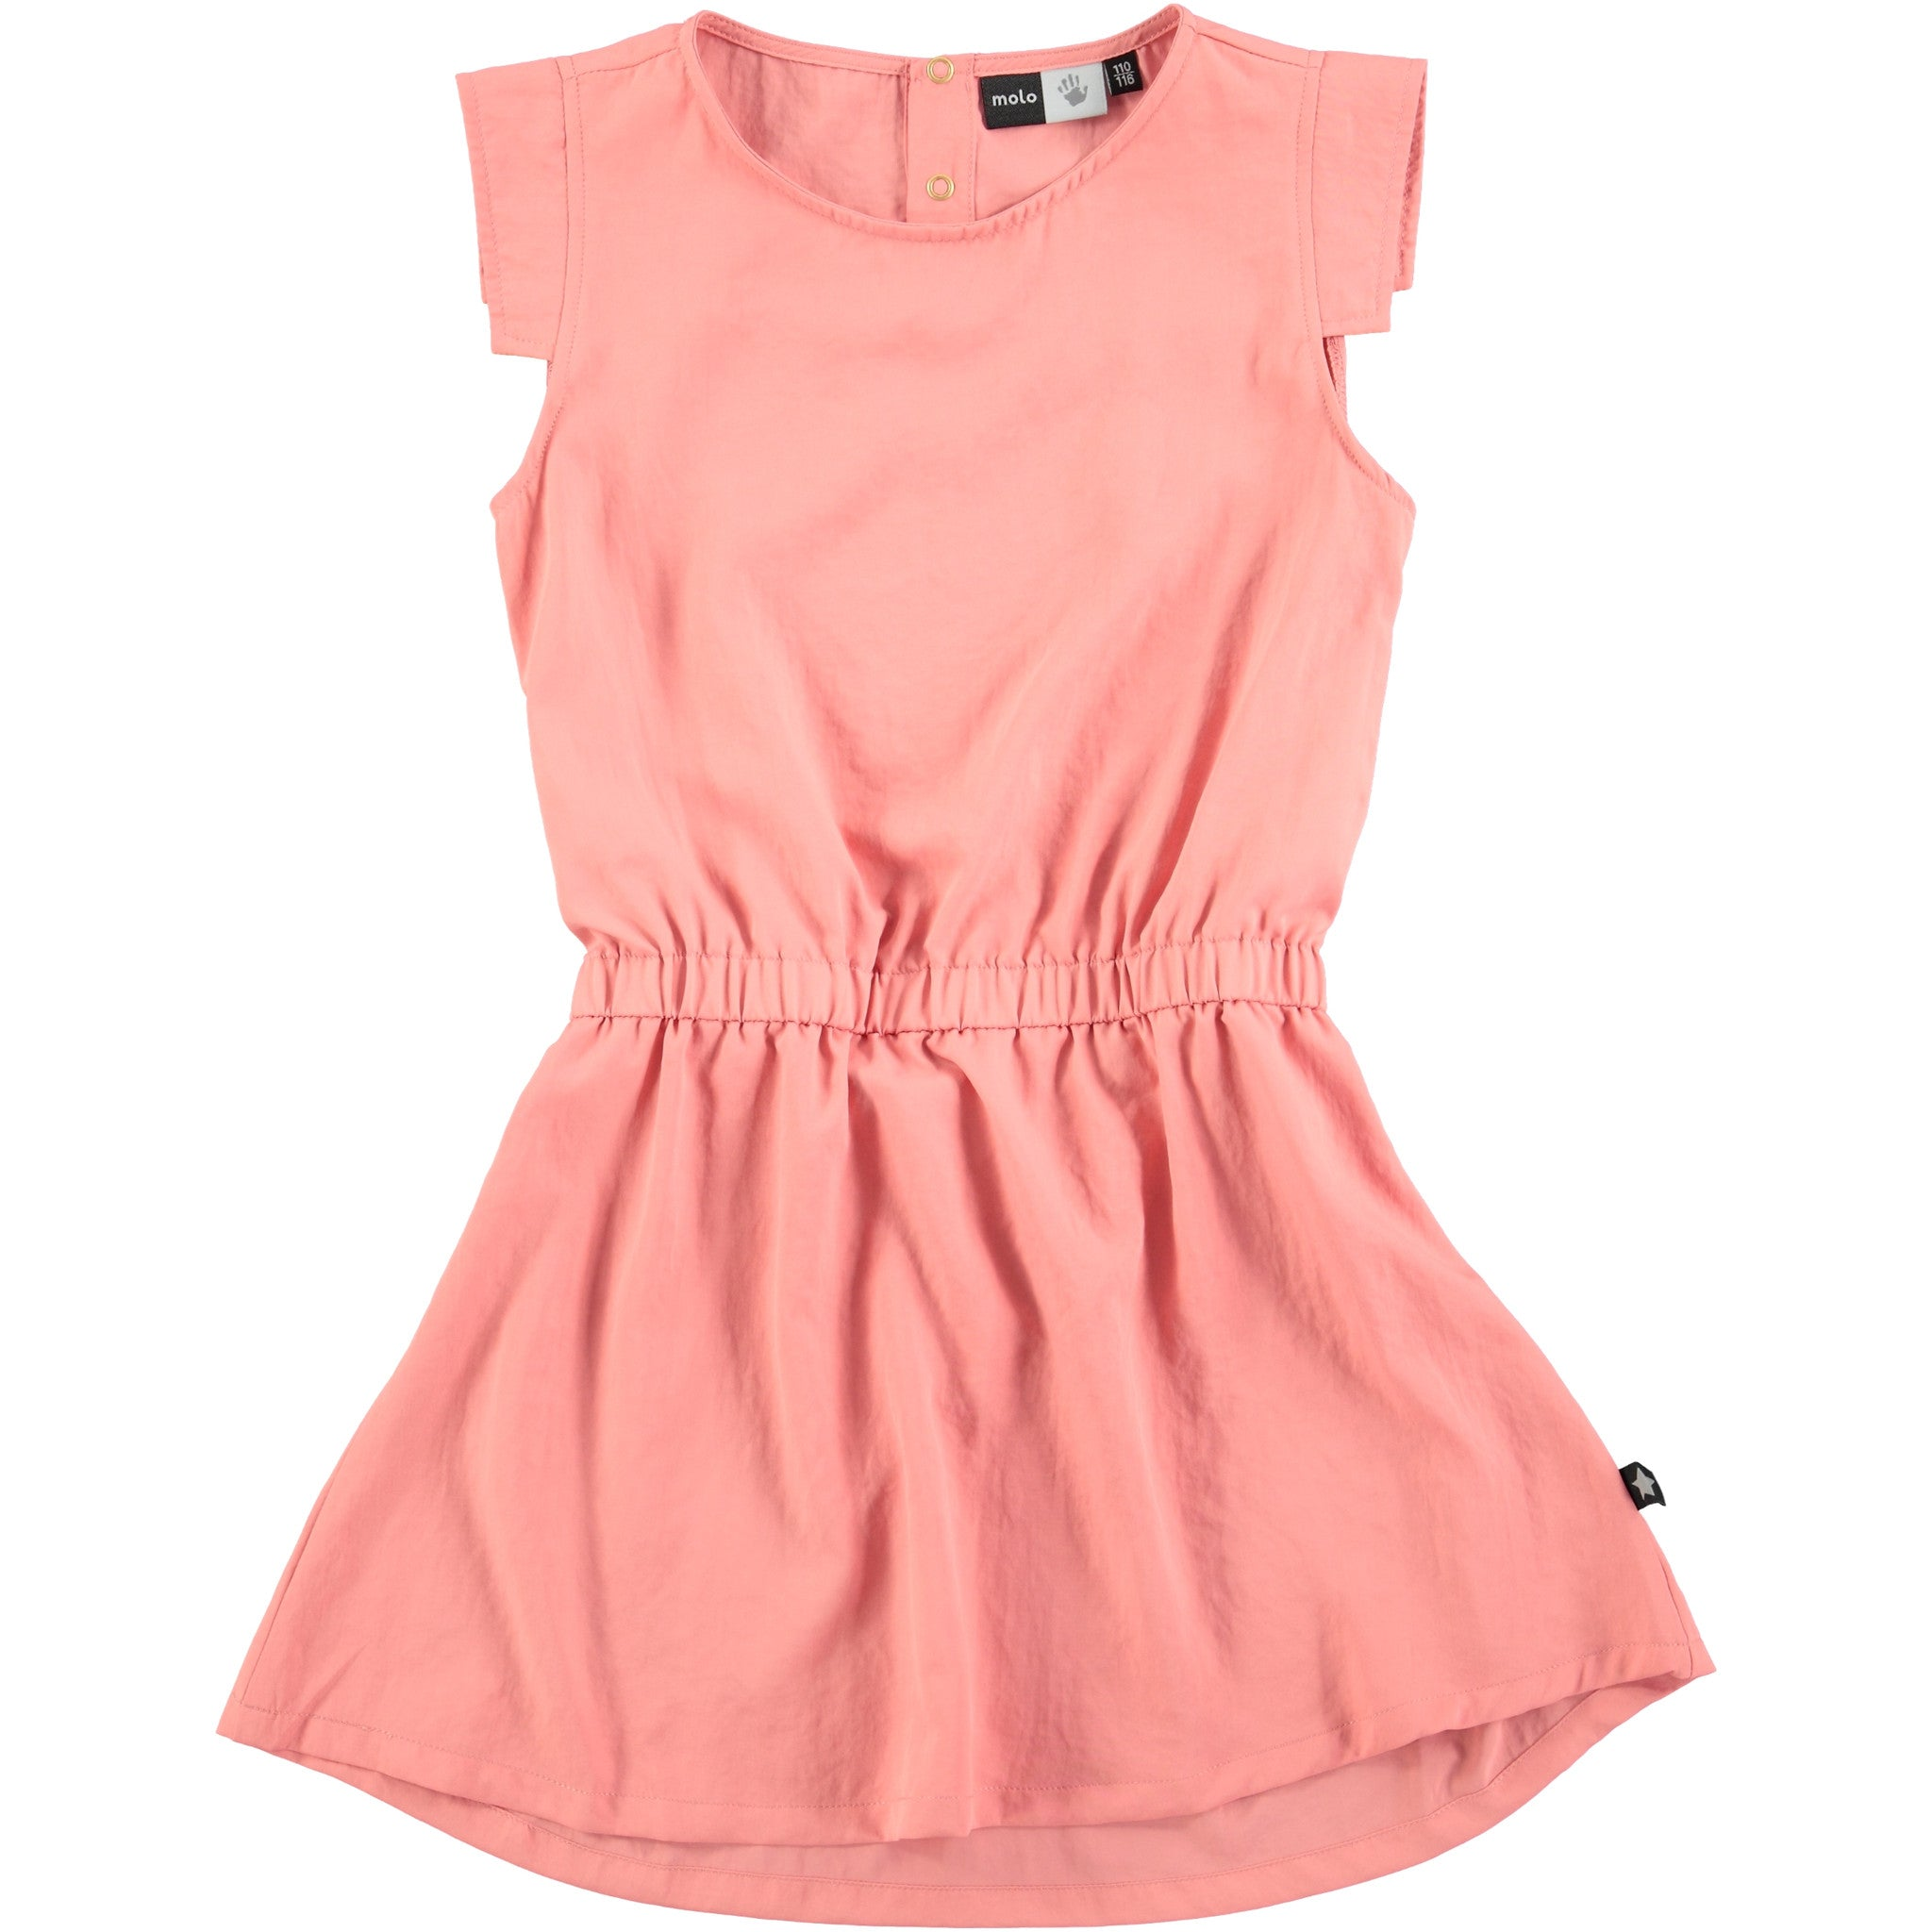 Molo  Pink Chrisette Dress - Ladida